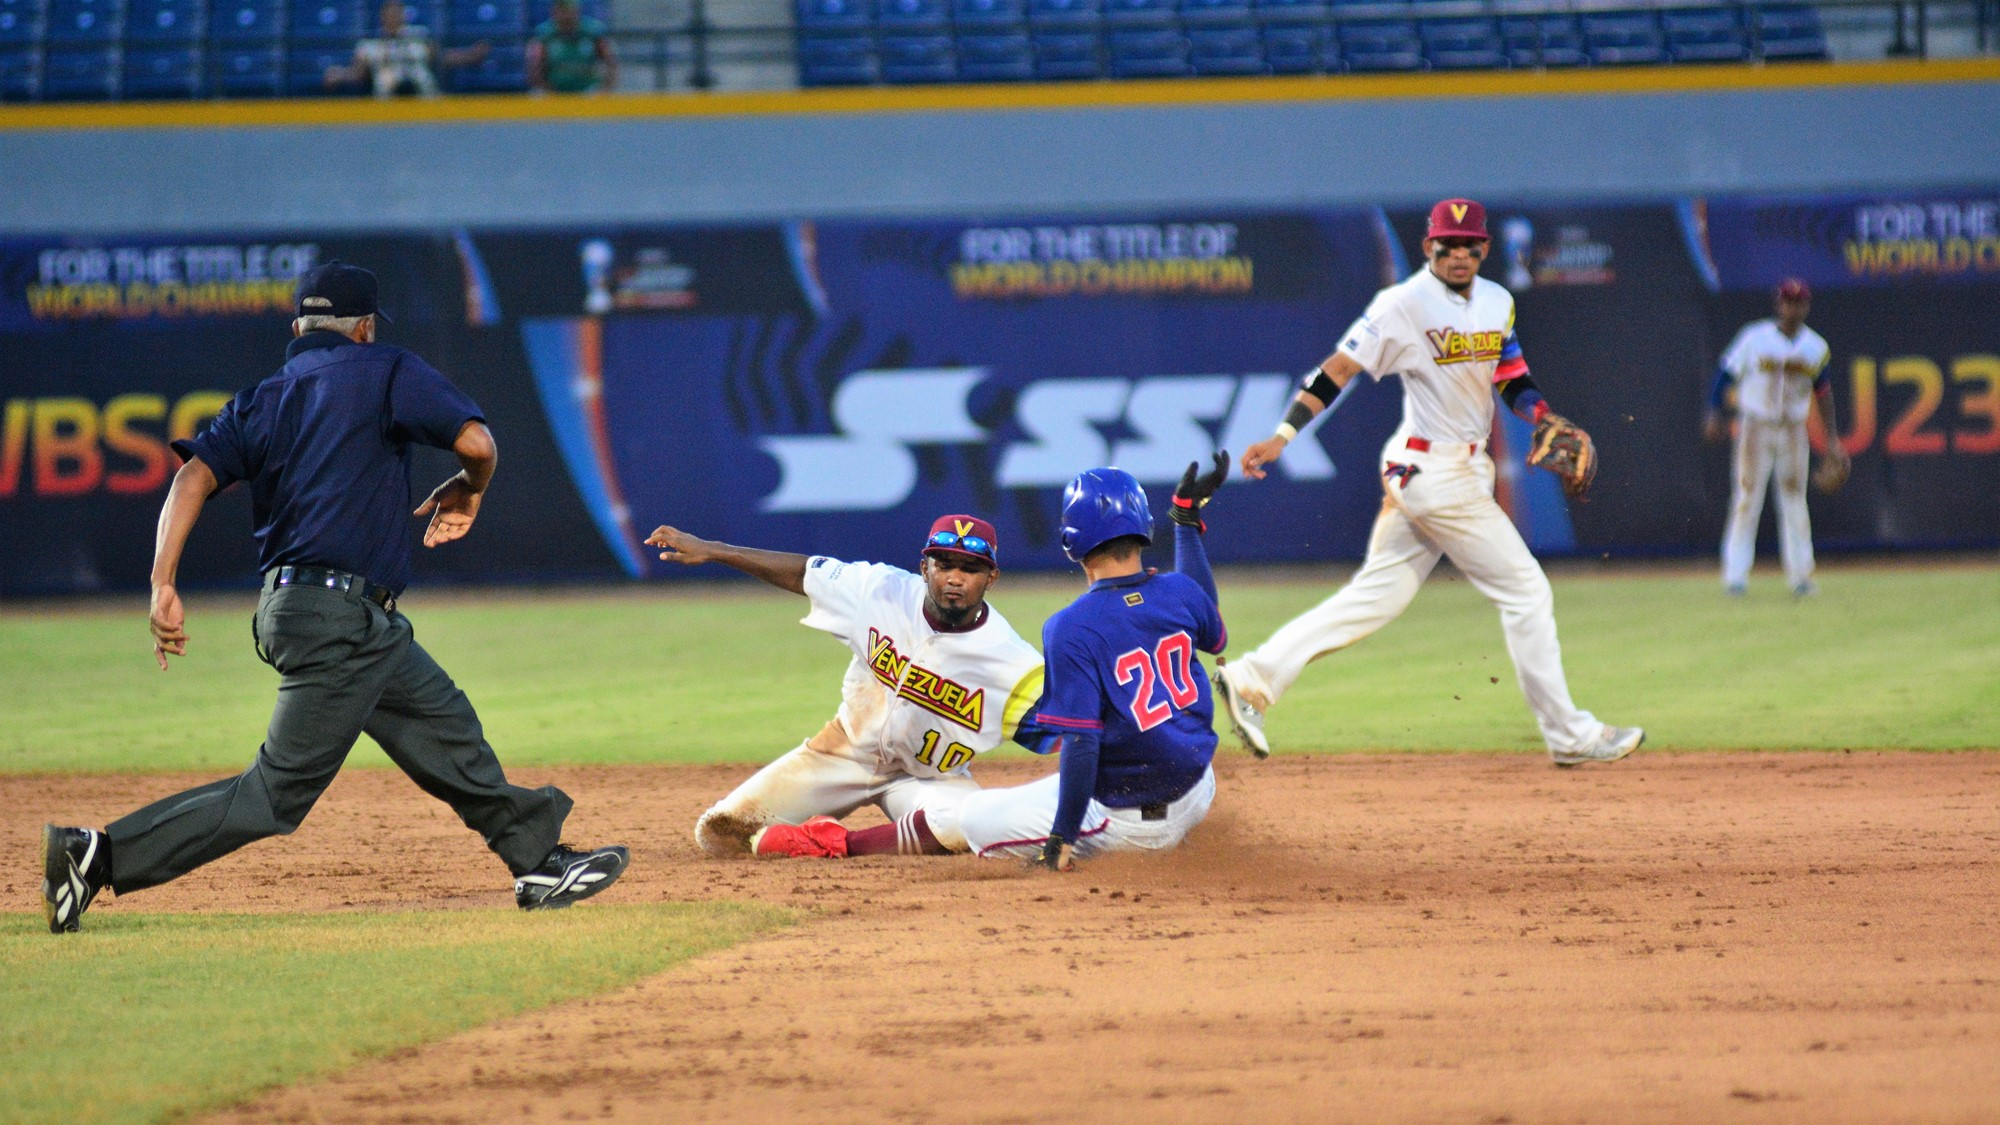 The game ended on Li Cheng En caught stealing at second